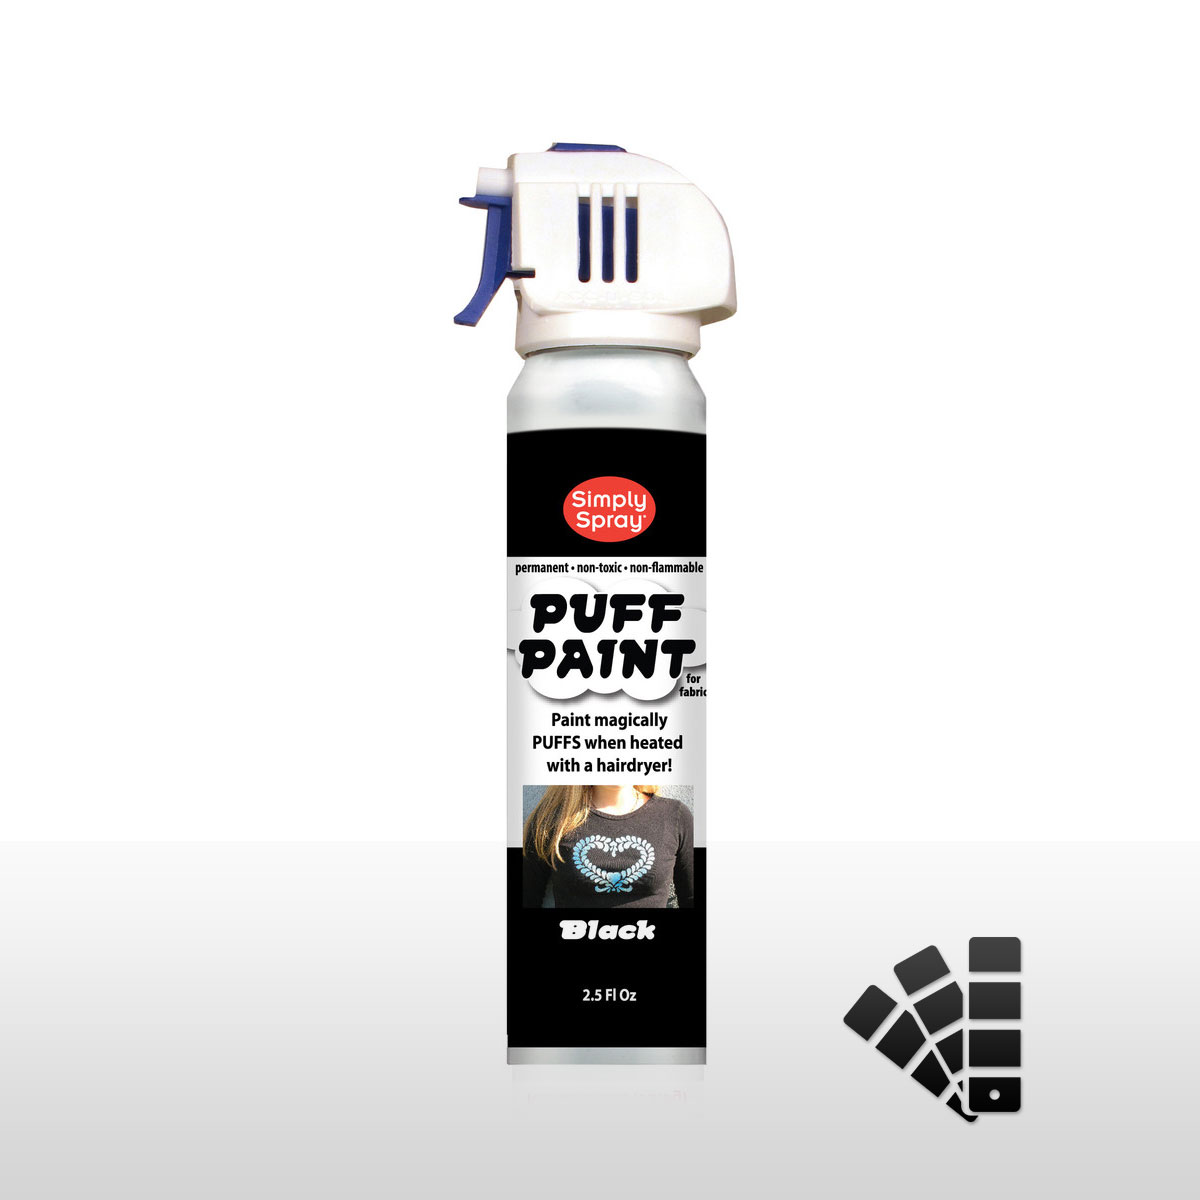 Puff Paint Black - Fabric Paint